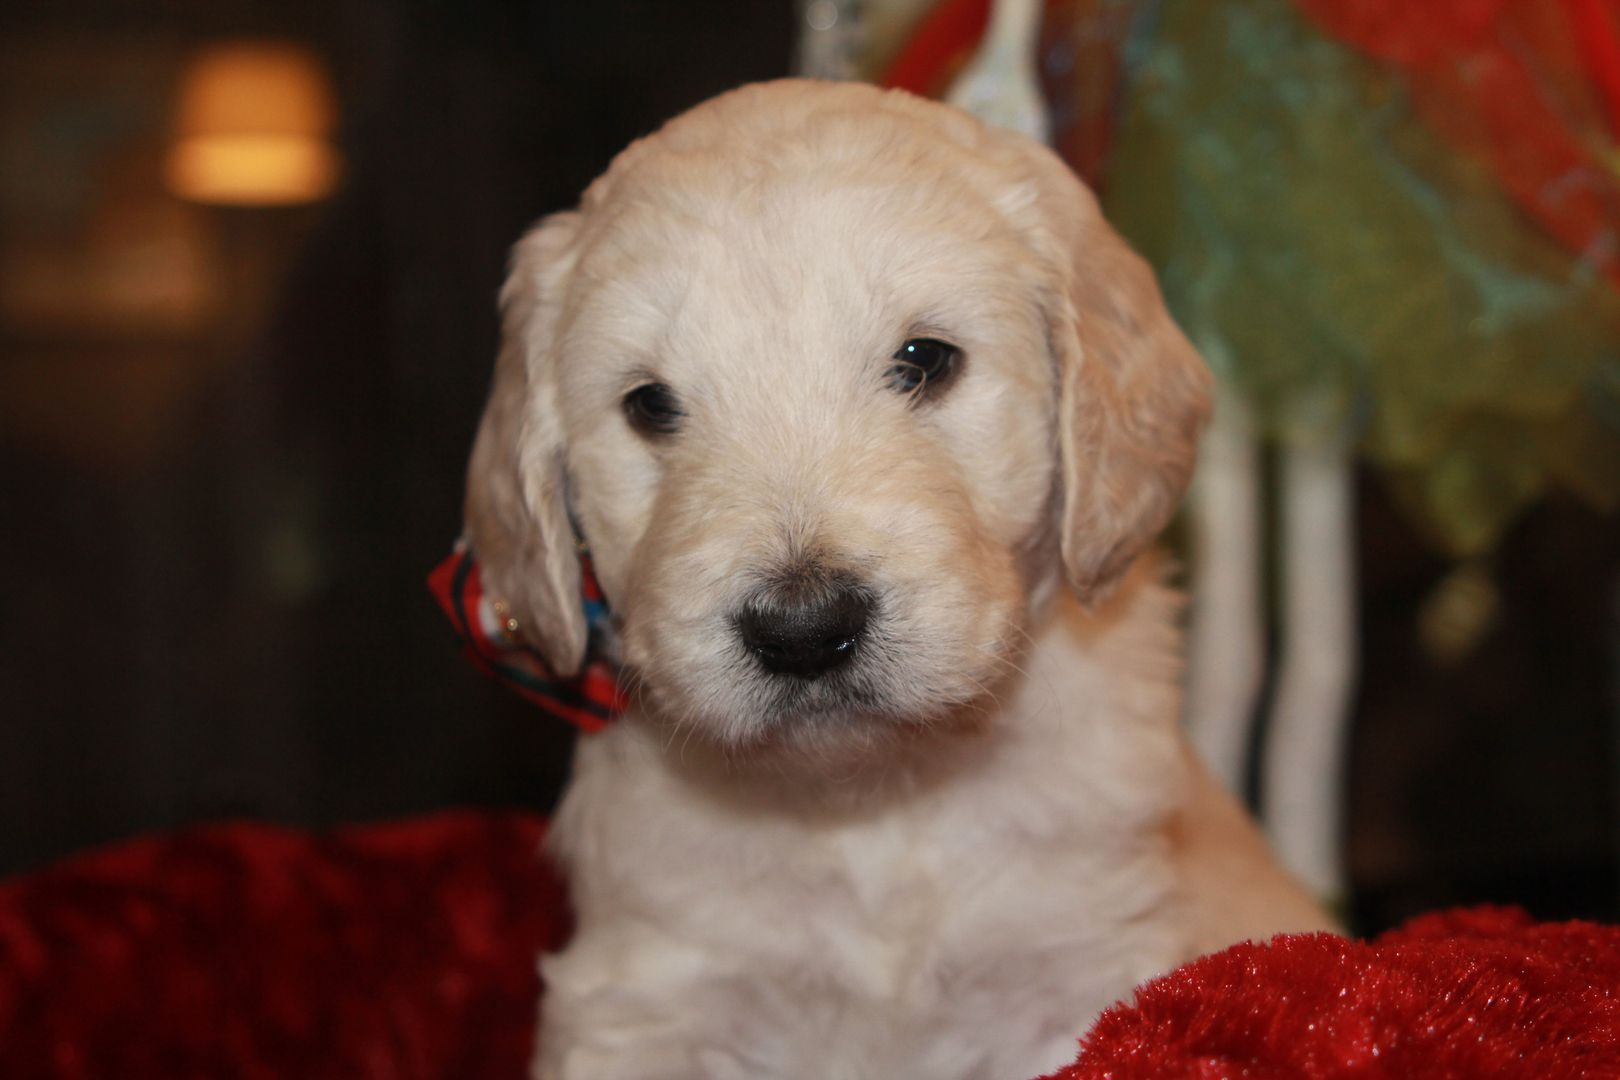 Sharper Poodles And Doodles Goldendoodle Breeder Puppies For Sale Goldendoodle Breeders Cute Dogs And Puppies Puppies